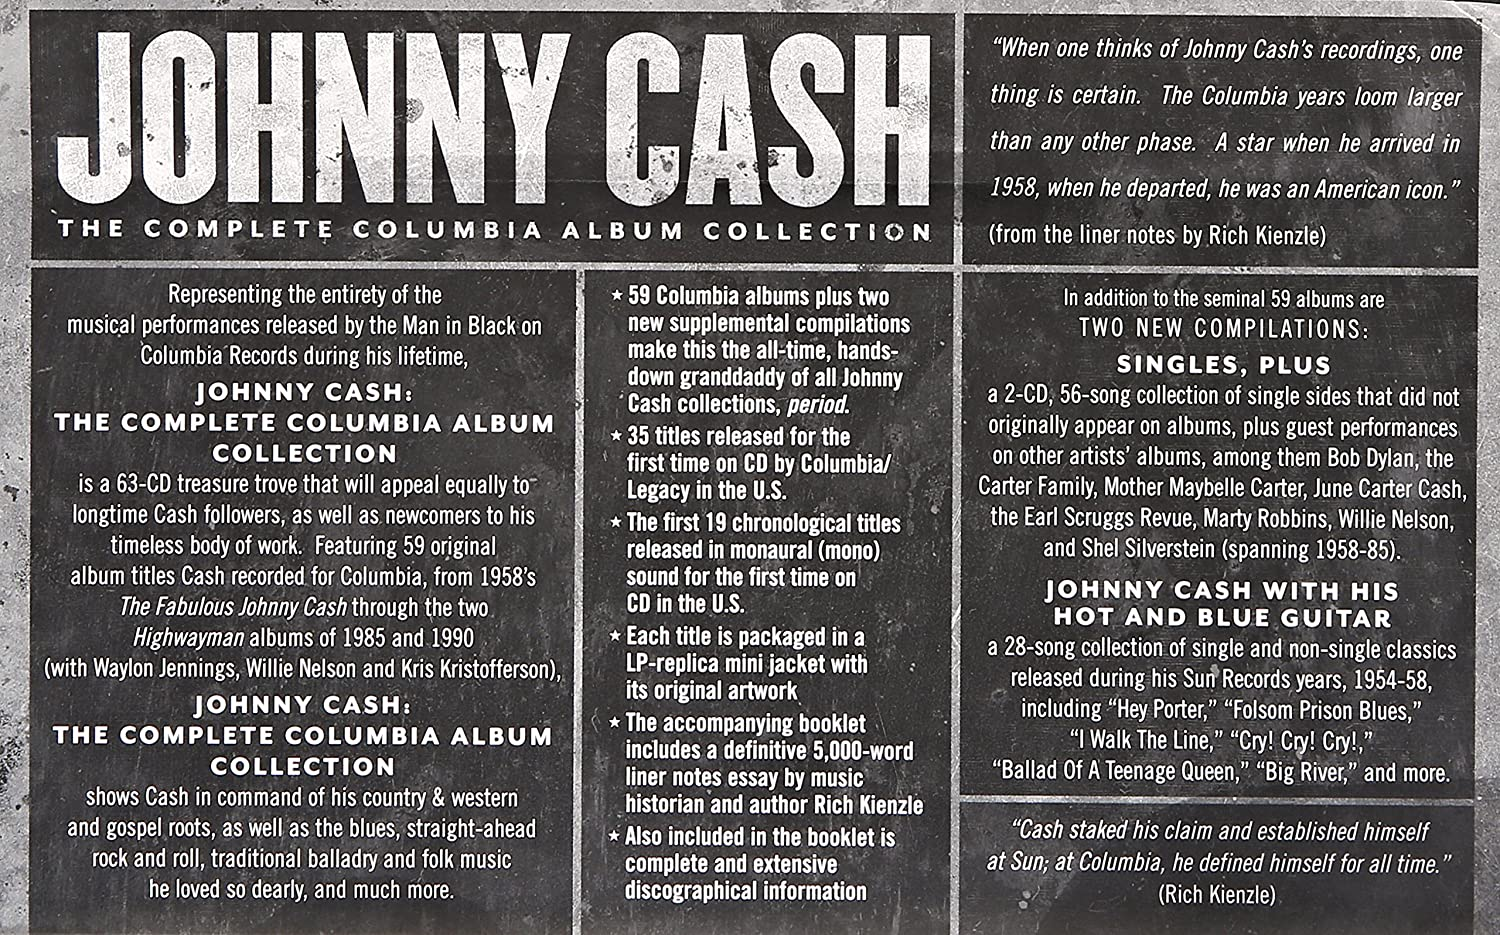 The Complete Columbia Album Collection - Johnny Cash: Amazon.de: Musik